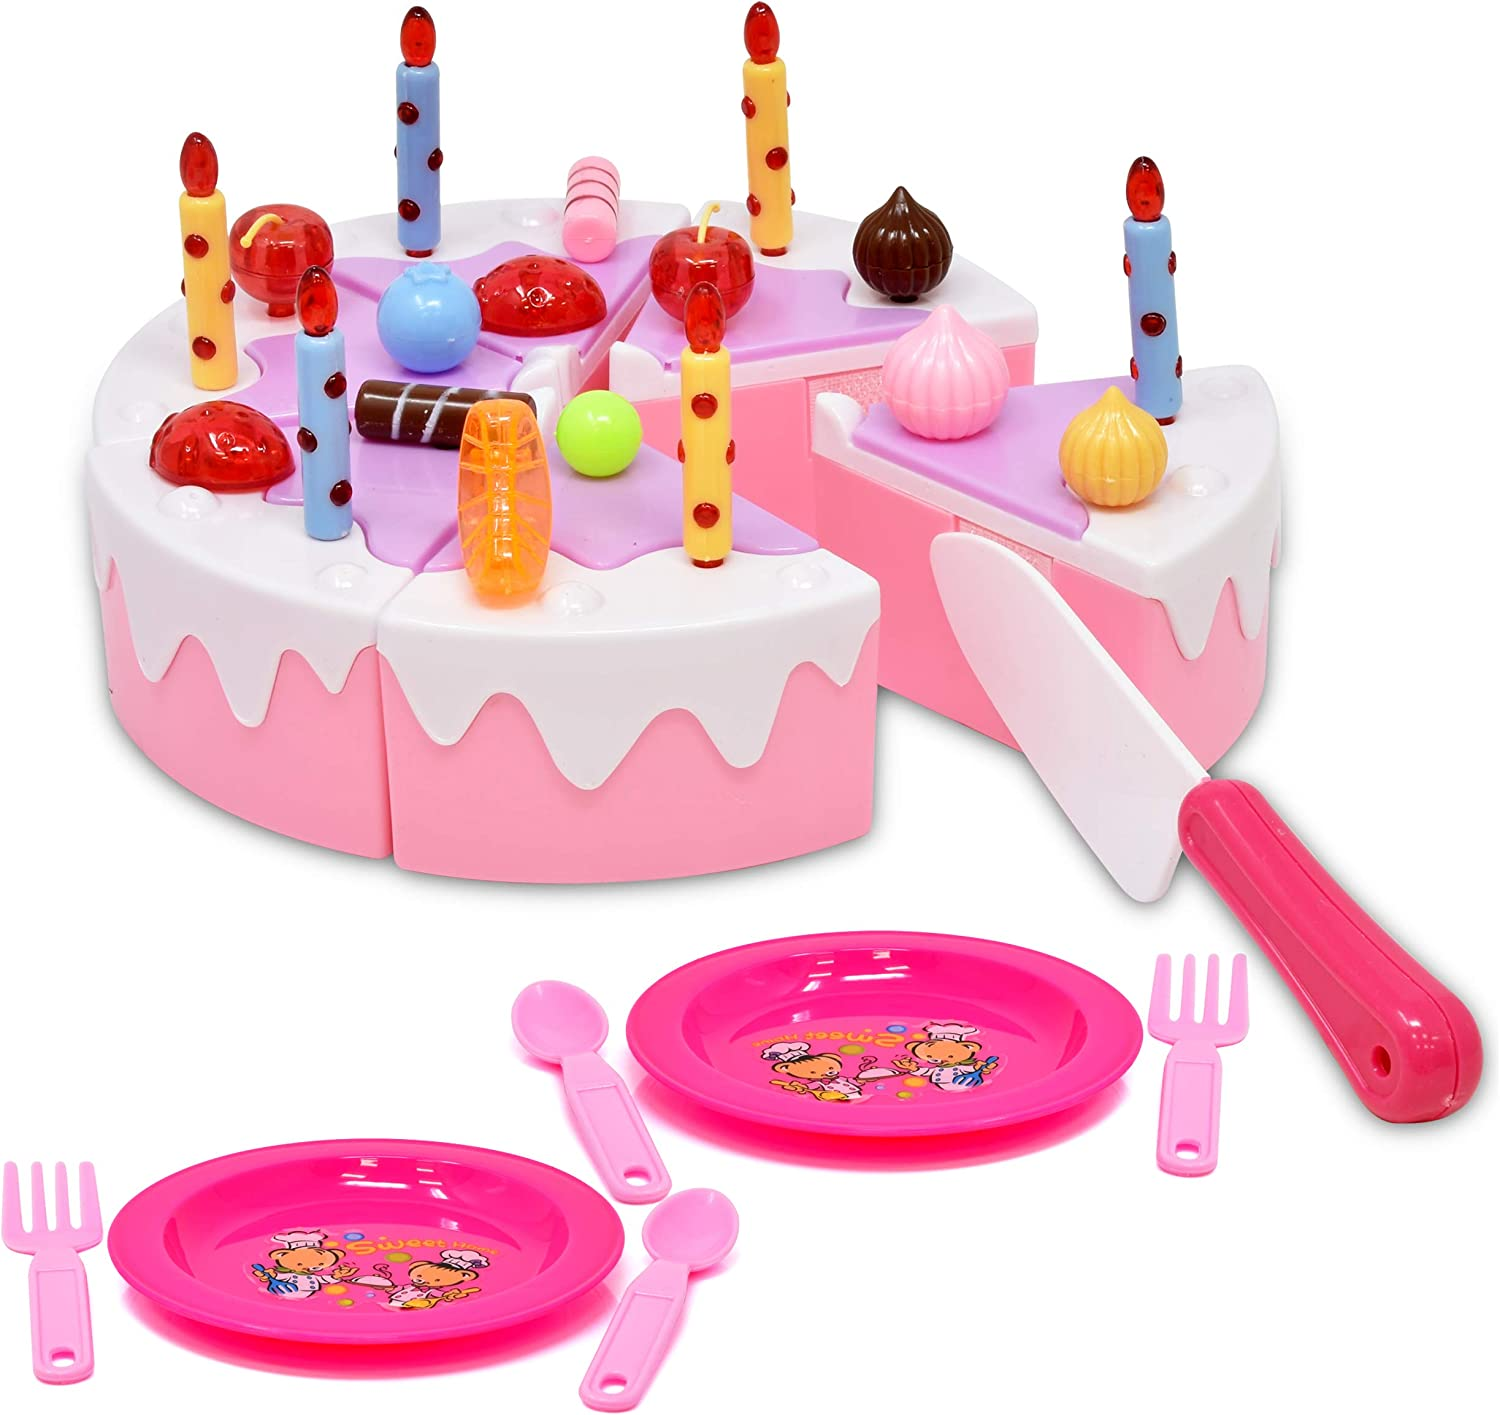 Number 1 in Gadgets Birthday Cake Toy for Kids, Pretend Play Party Food Set Cutting Dessert with Candles, Plates Forks, Princess Party Playset